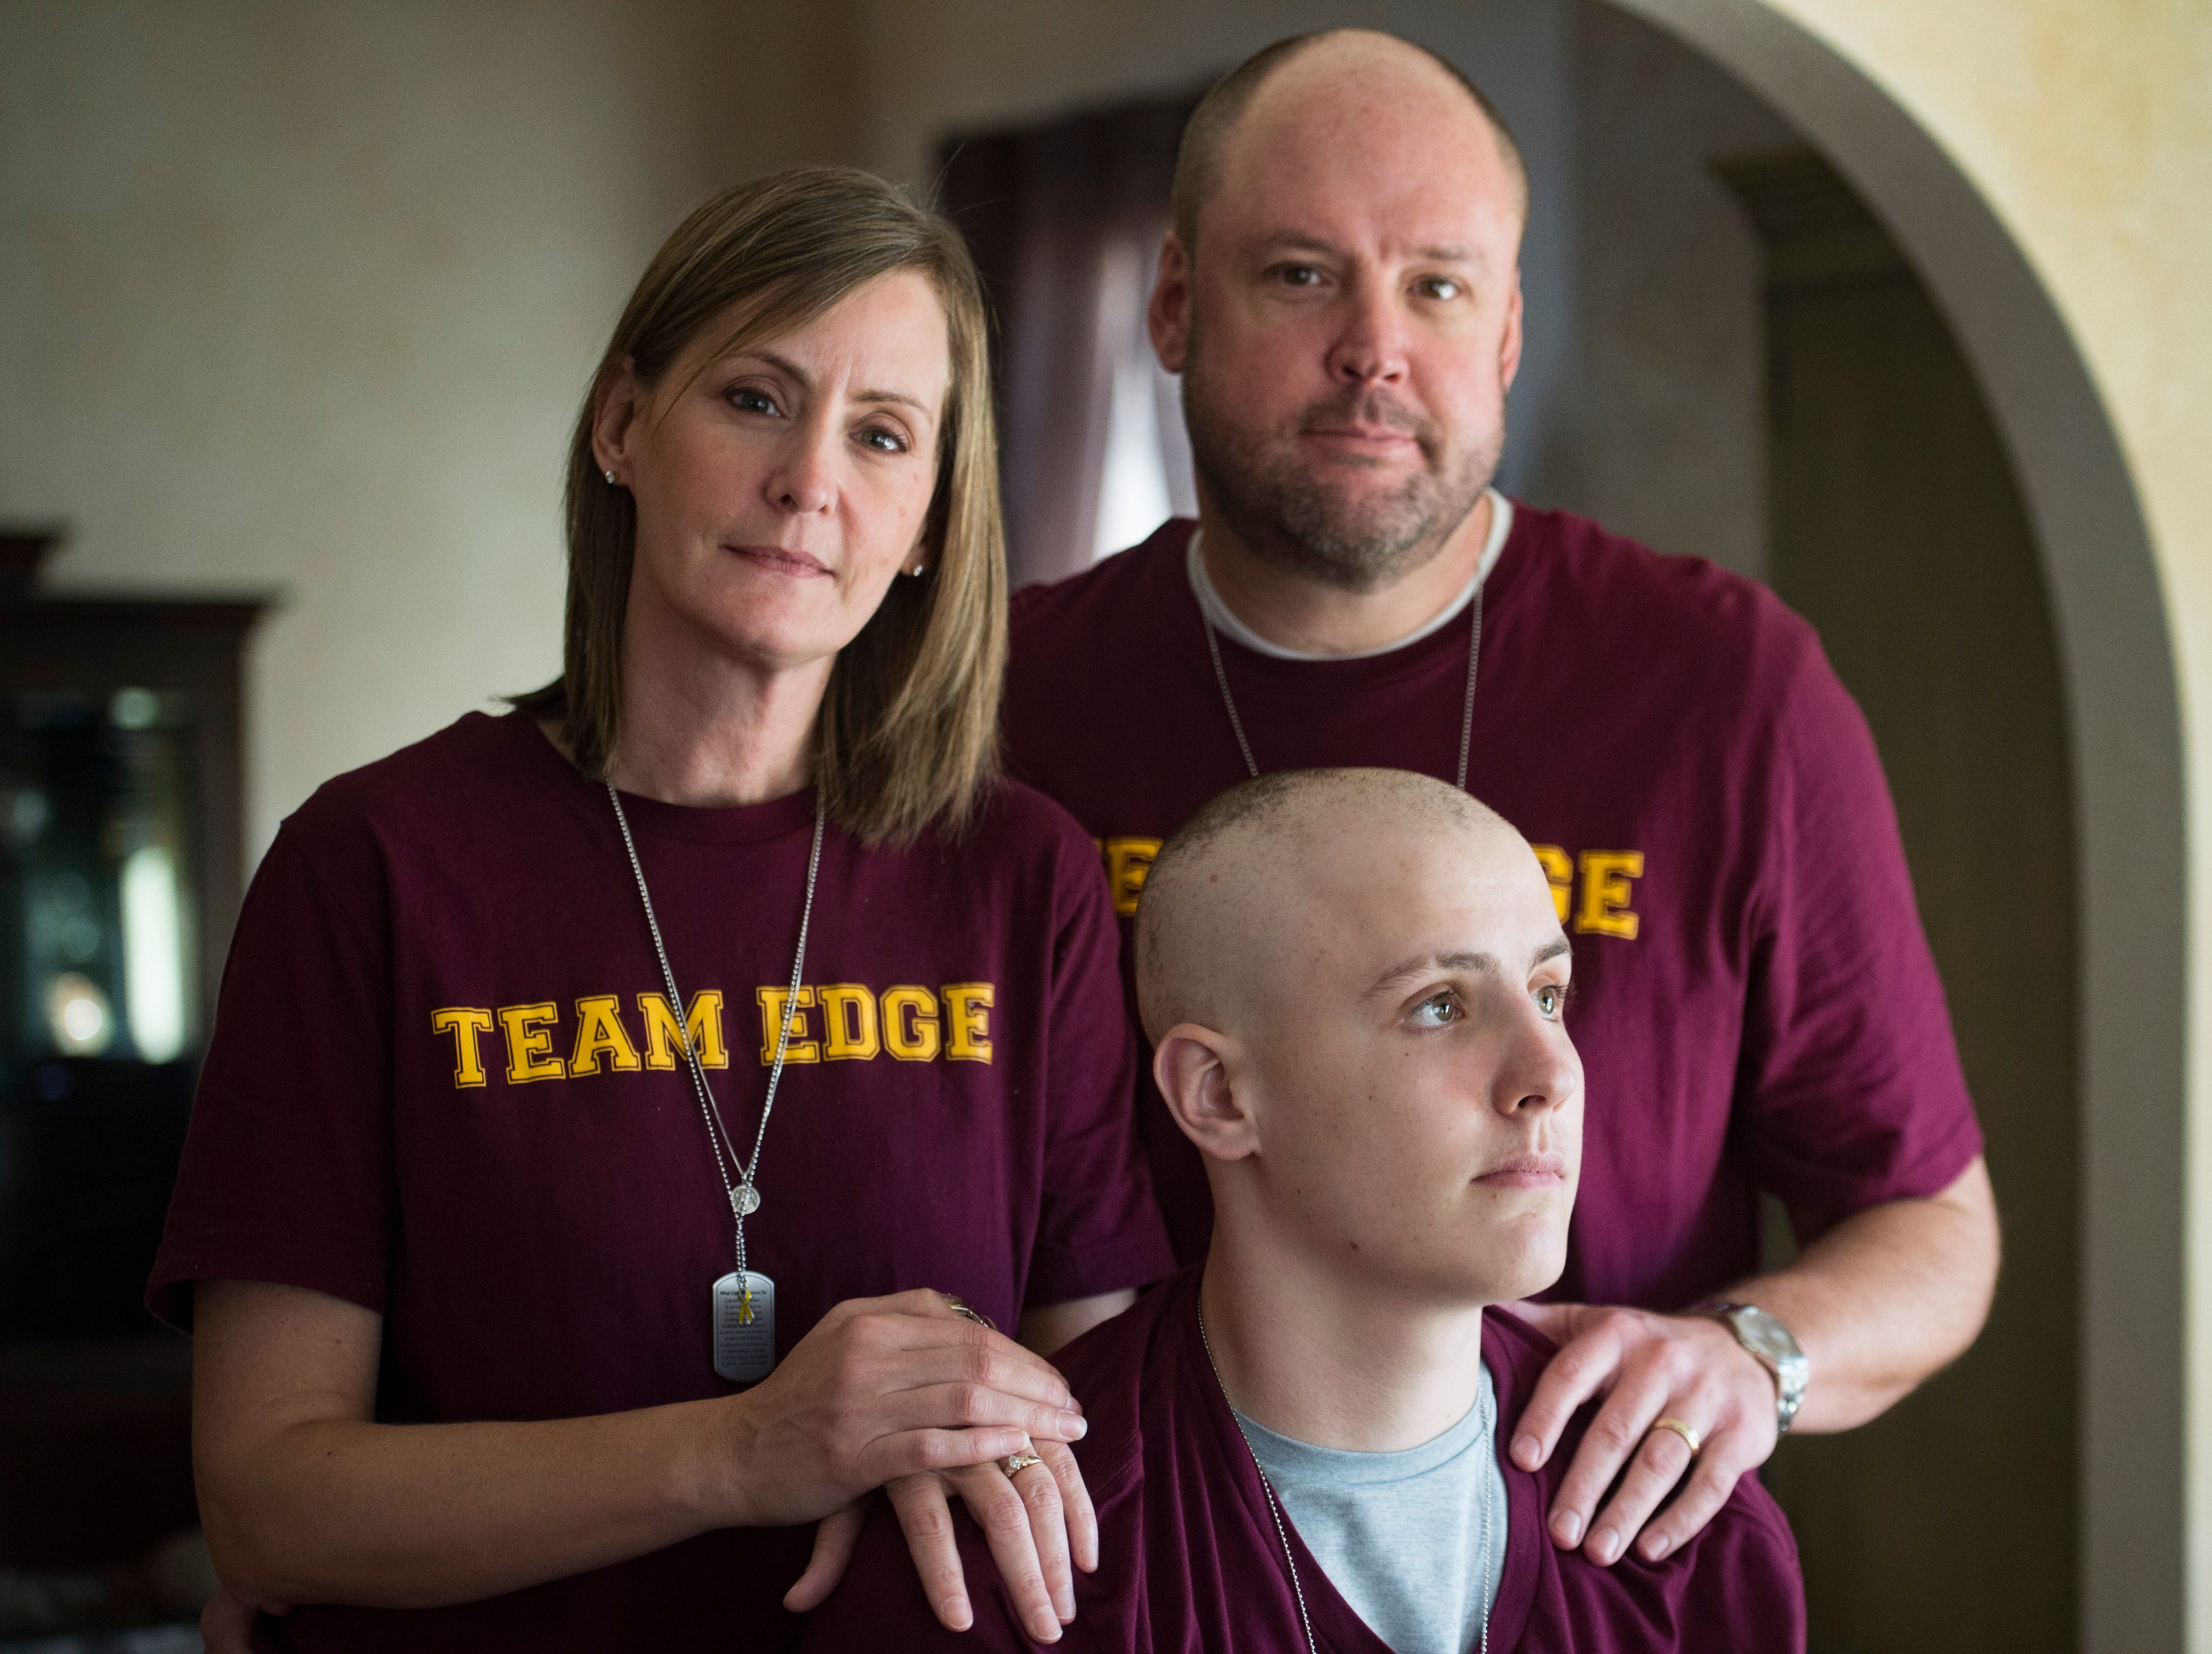 Michelle and Michael Edgerley pose for a photo with their son, Carter, 17, at their home in Fort Collins on Tuesday, January 8, 2019. Carter, a senior at Rocky Mountain High School, was diagnosed with cancer in December and has received an outpour of support from friends, family and teachers.